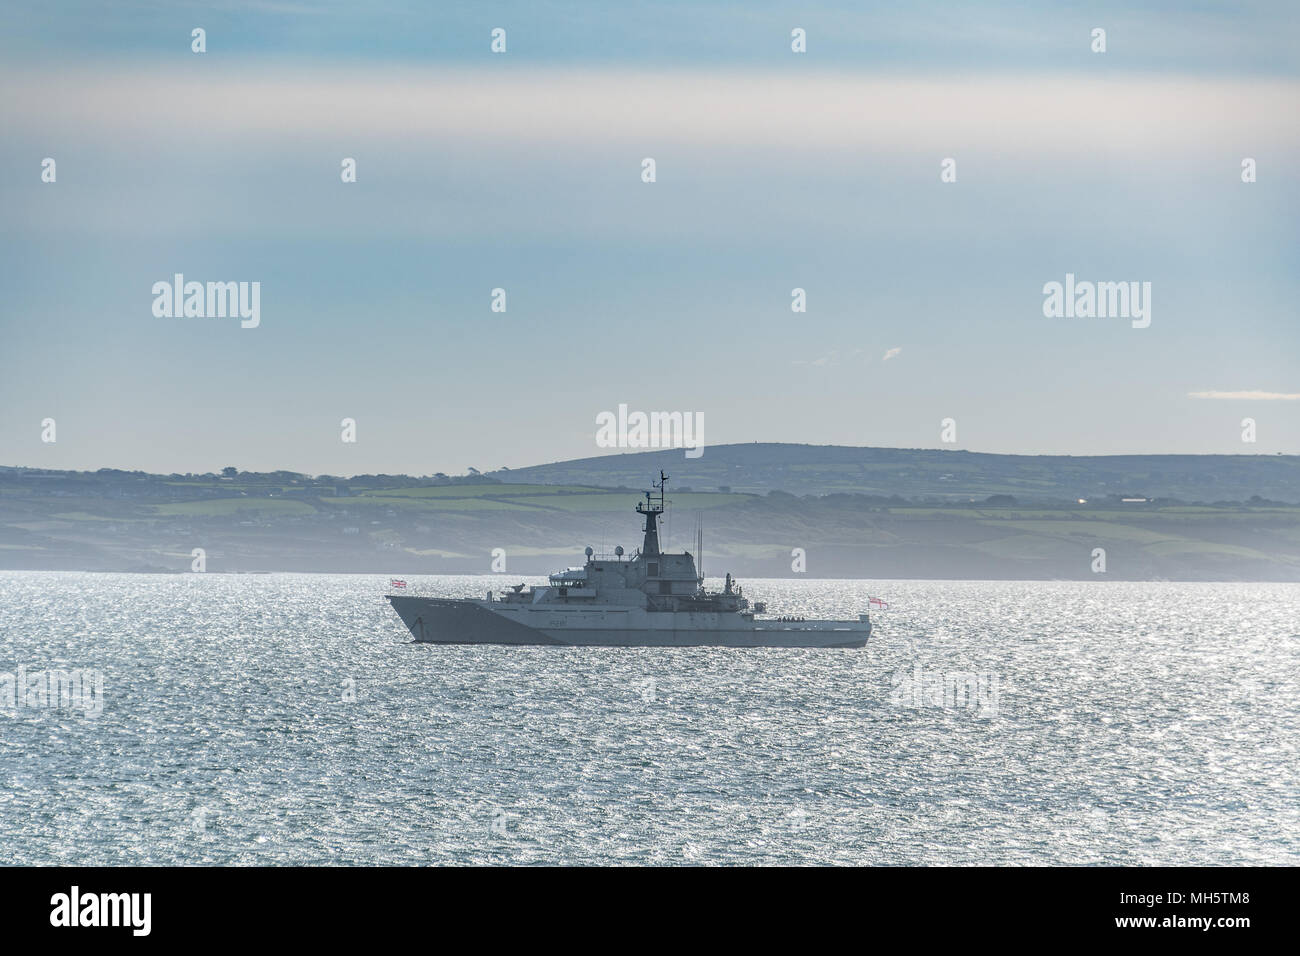 Newlyn, Cornwall, UK.  30th April 2018. UK Weather. HMS Tyne out in a sunny Mounts Bay this morning.  HMS Tyne is the first of a trio of River-class patrol ships built to safeguard the fishing stocks in UK.  The ship is one of the busiest in the Fleet as she spends on average nine out of every ten days of the year at sea. Credit: Simon Maycock/Alamy Live News - Stock Image